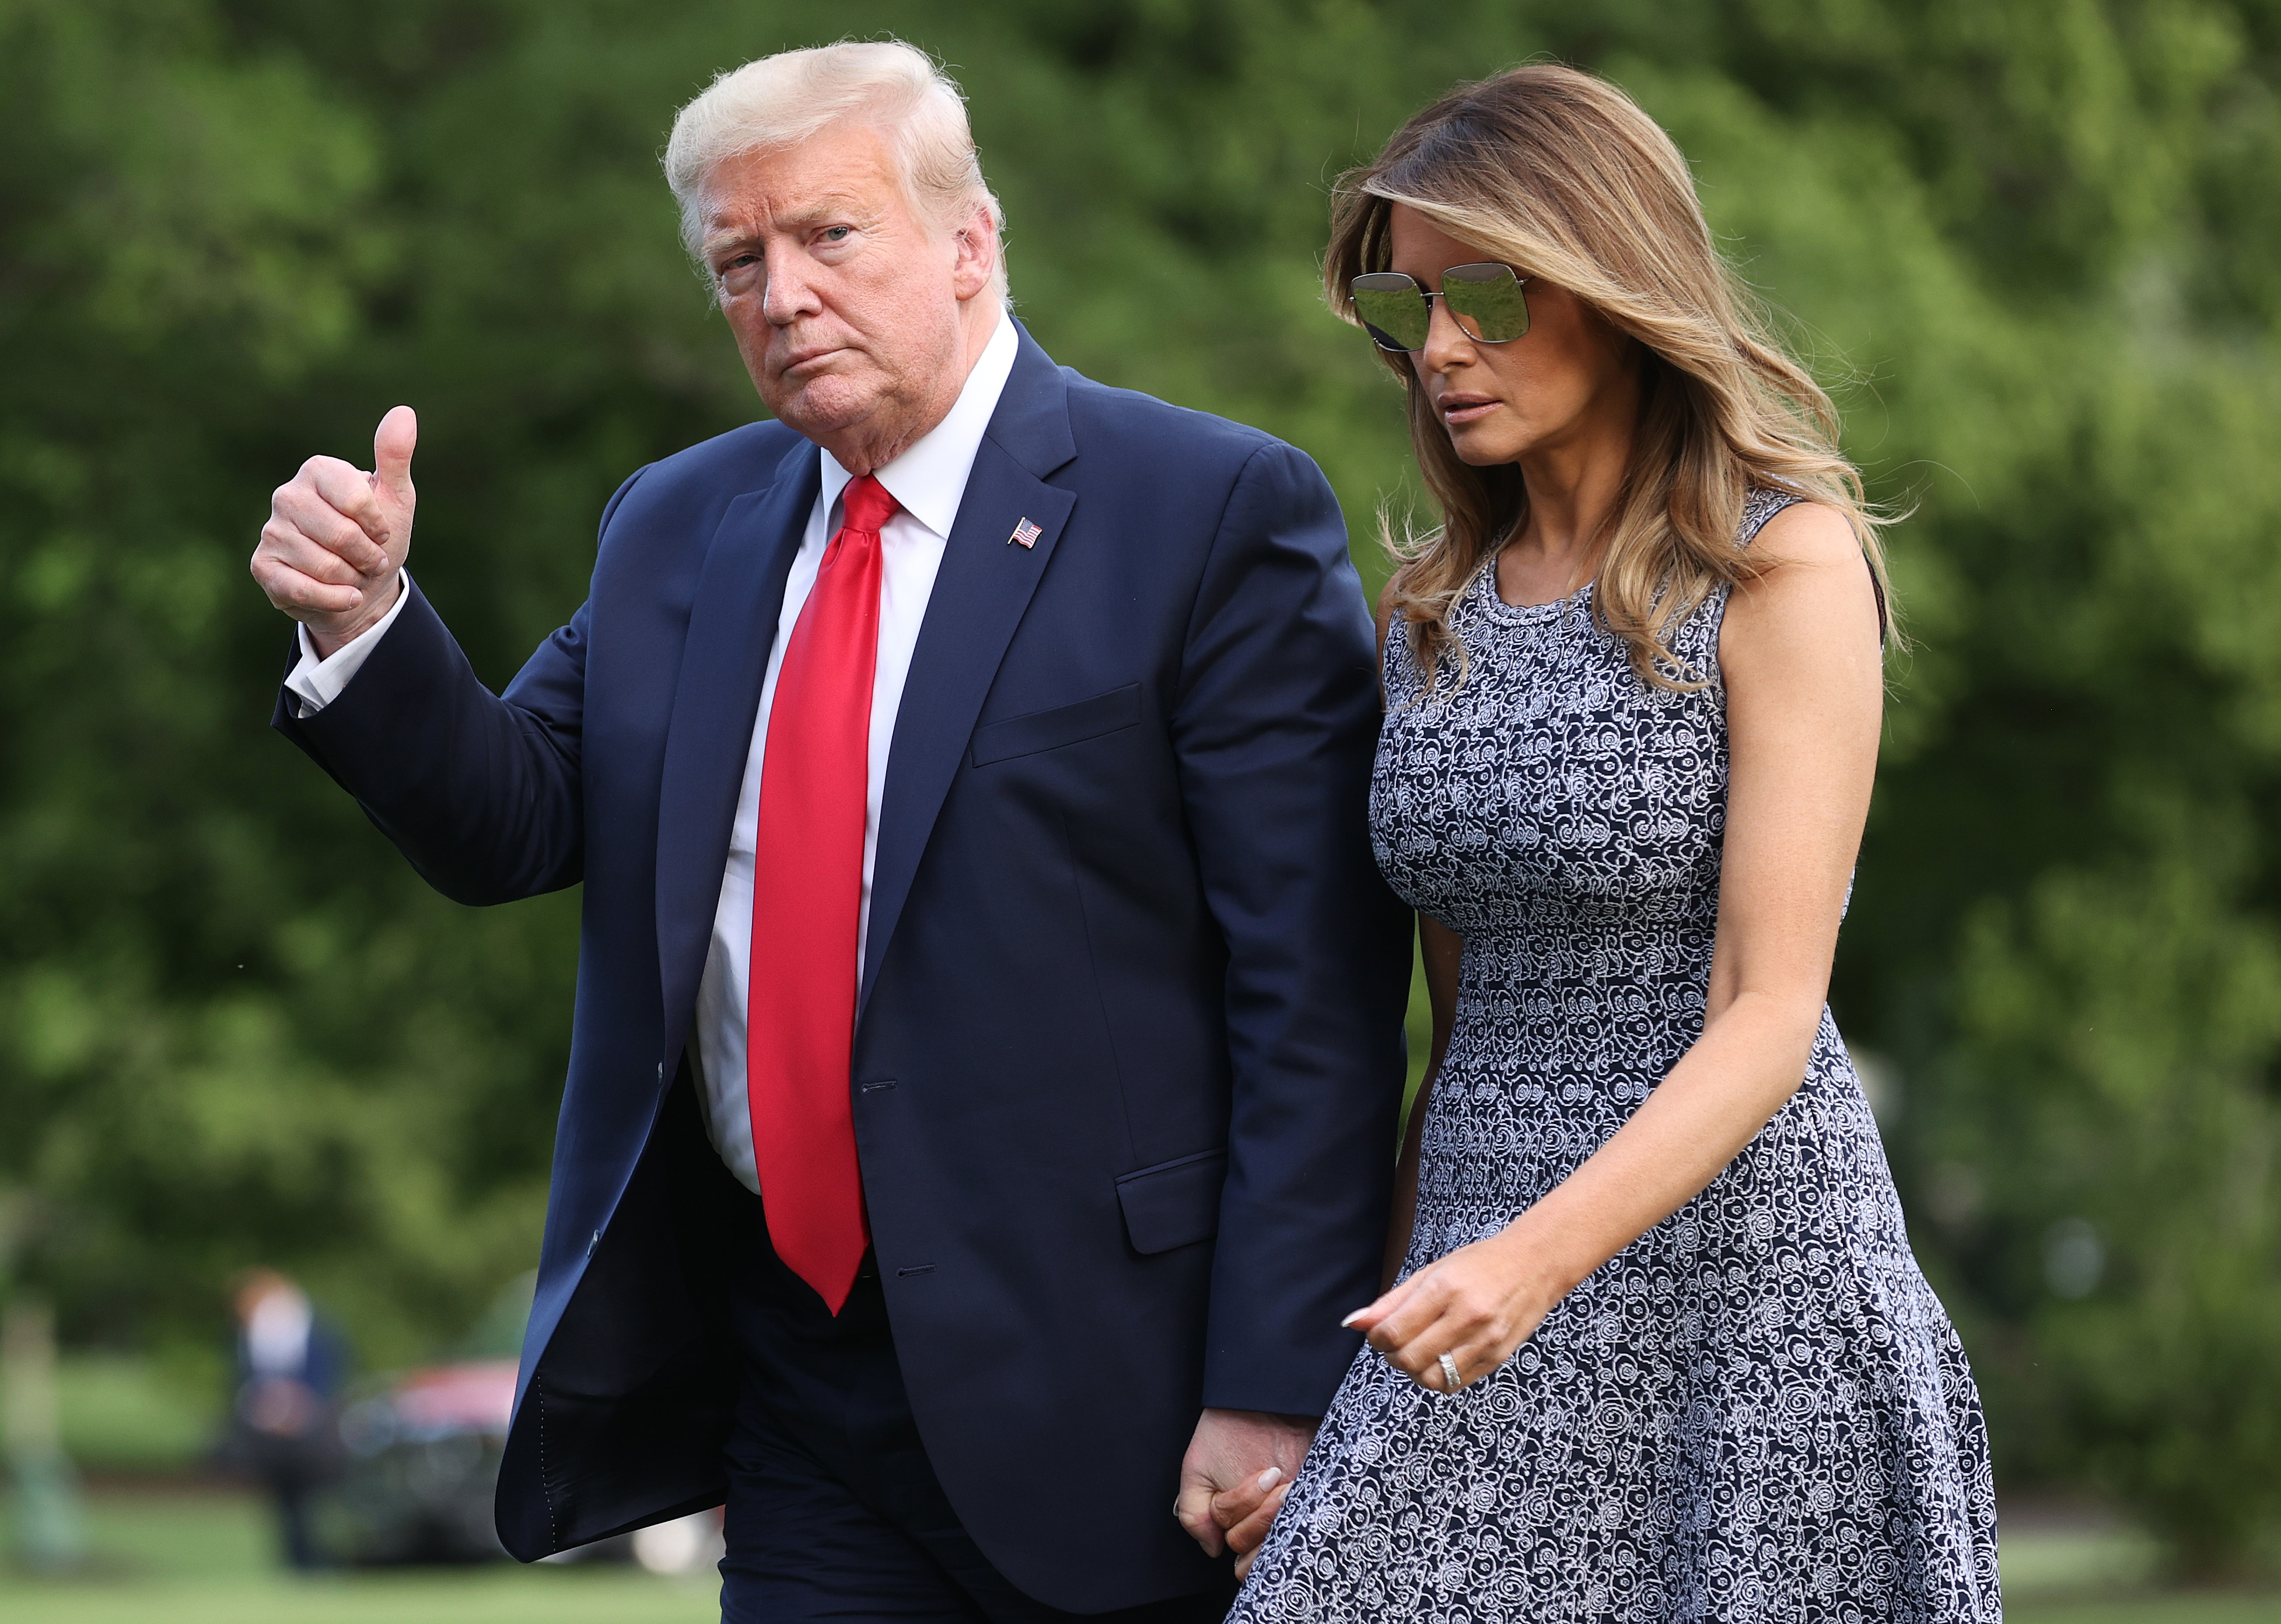 WASHINGTON, DC - MAY 27: U.S. President Donald Trump and first lady Melania Trump return to the White House on May 27, 2020 in Washington, DC. Trump traveled to Florida to watch the SpaceX launch of two U.S. astronauts to the International Space Station, but the launch was canceled due to poor weather. (Photo by Win McNamee/Getty Images)